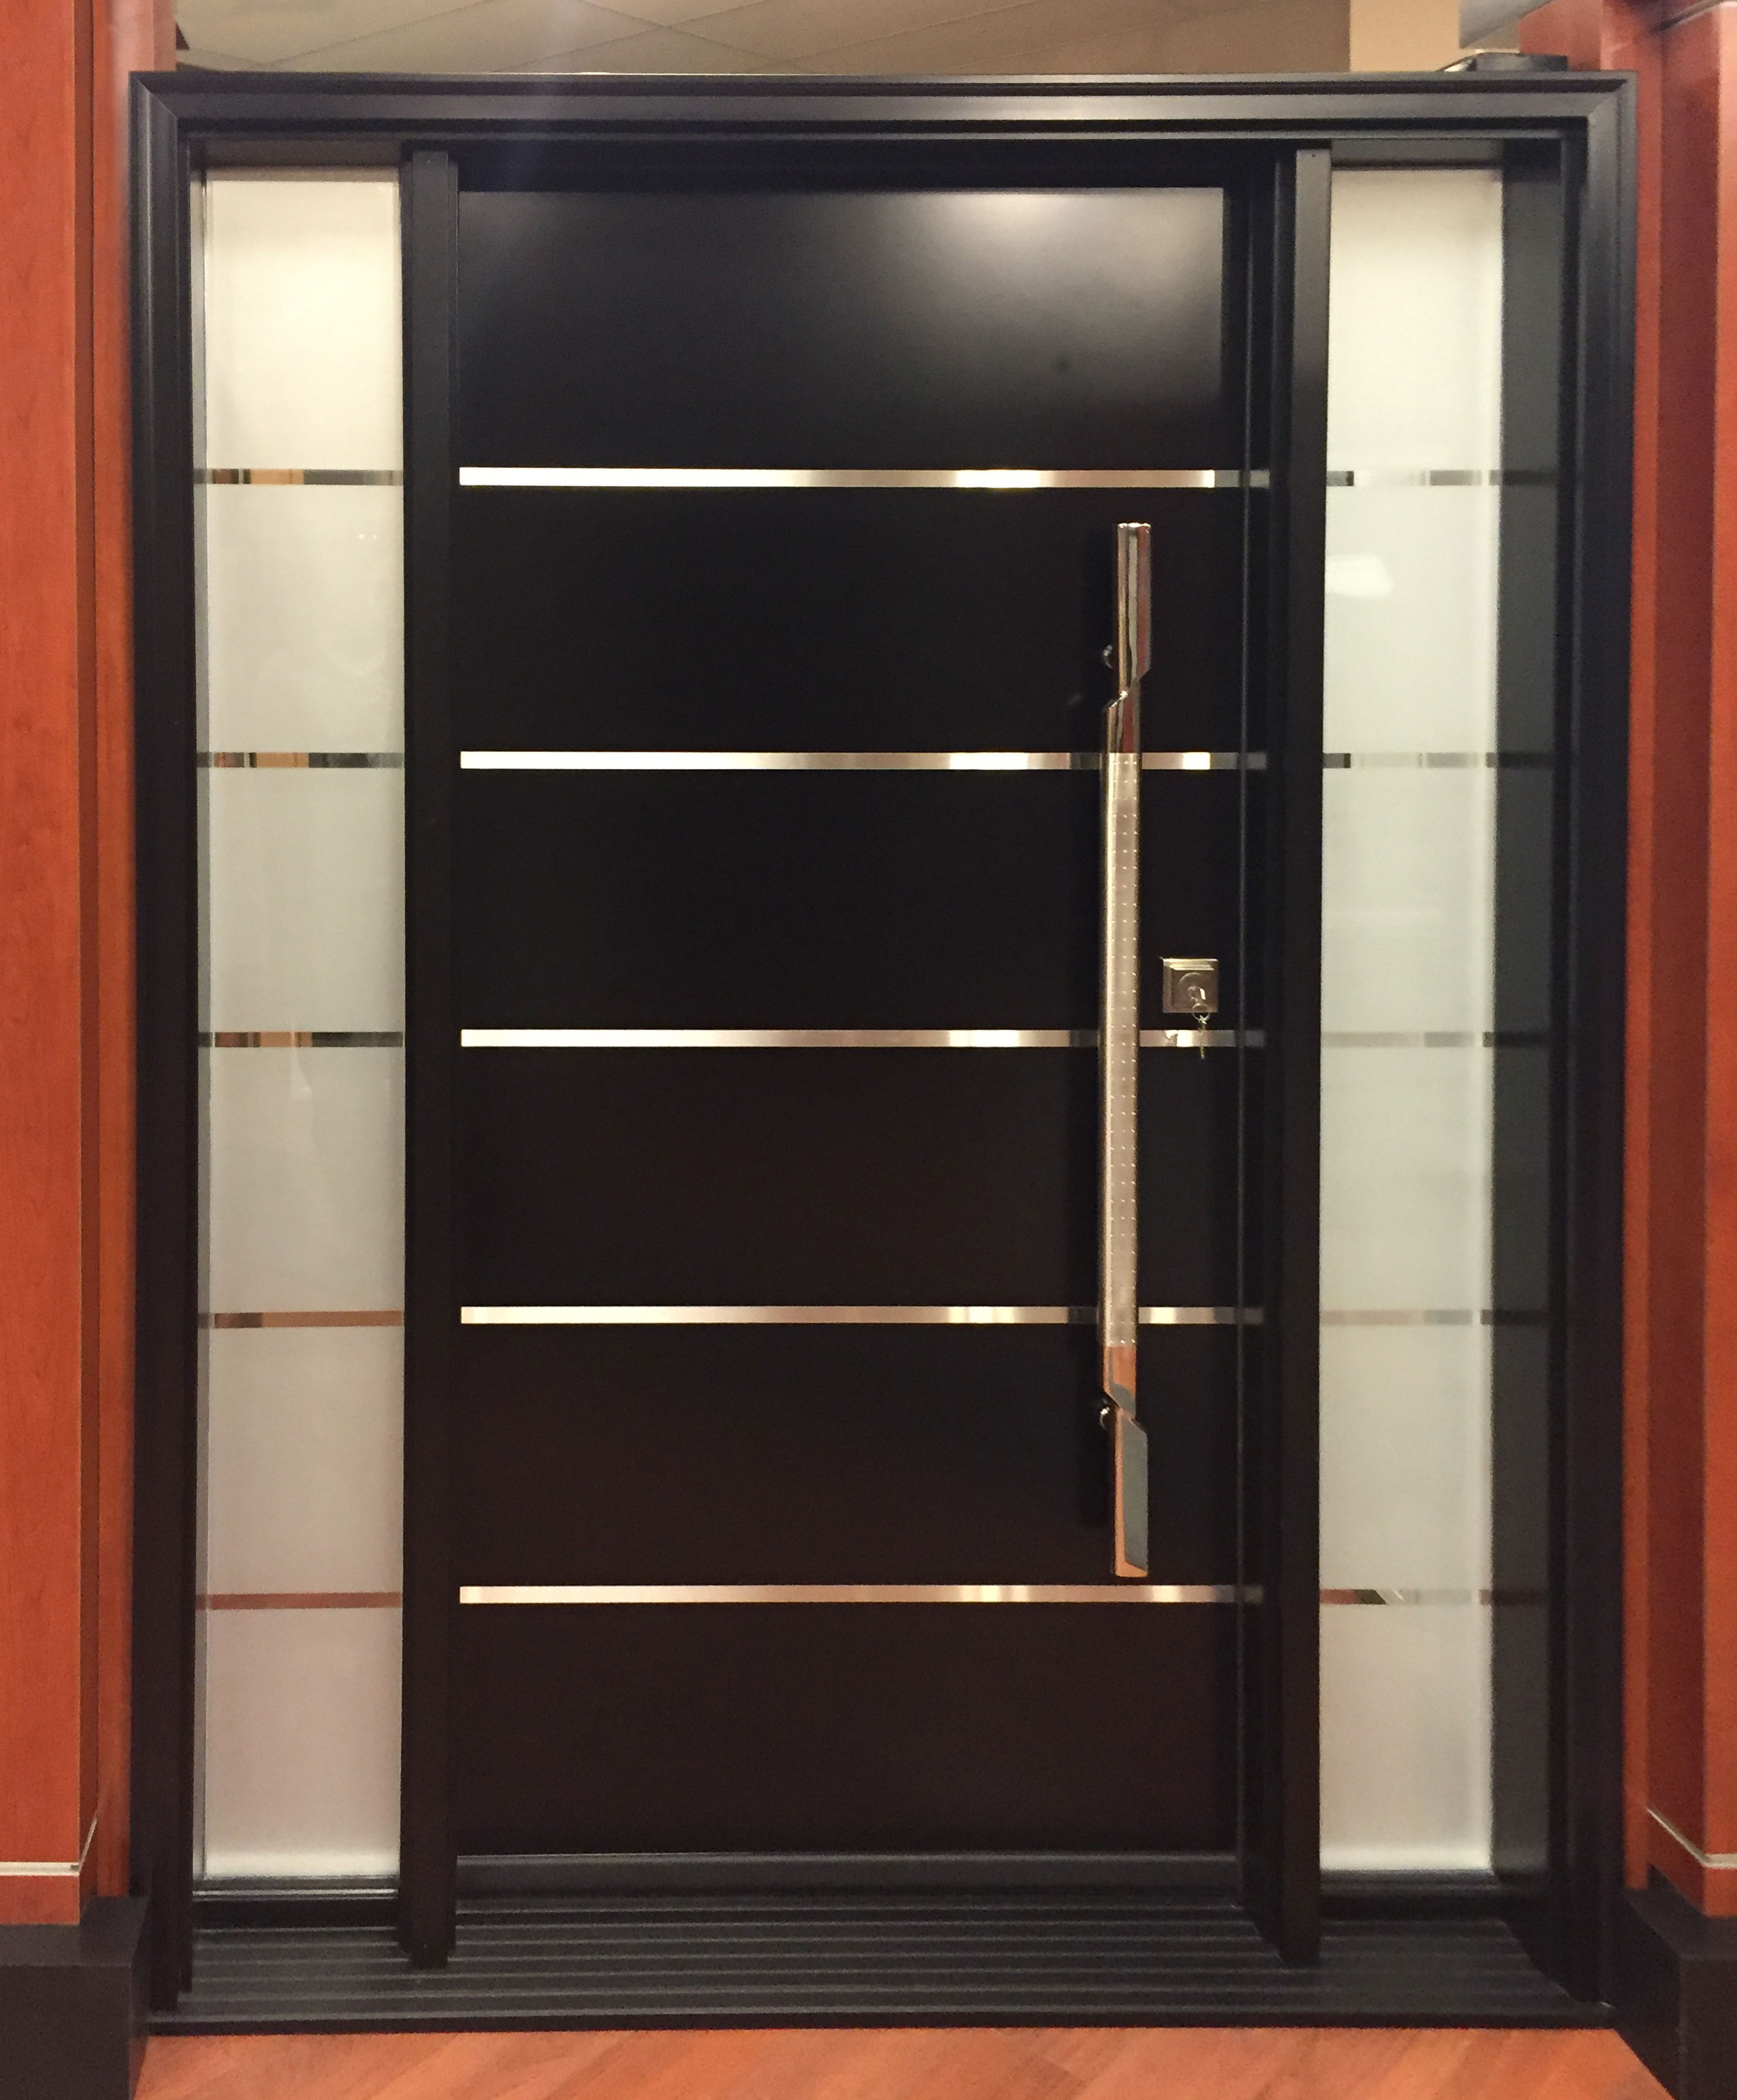 Adorable Design Of The Black Wooden Modern Front Doors With Shiny Knobs And Glass Windows Ideas